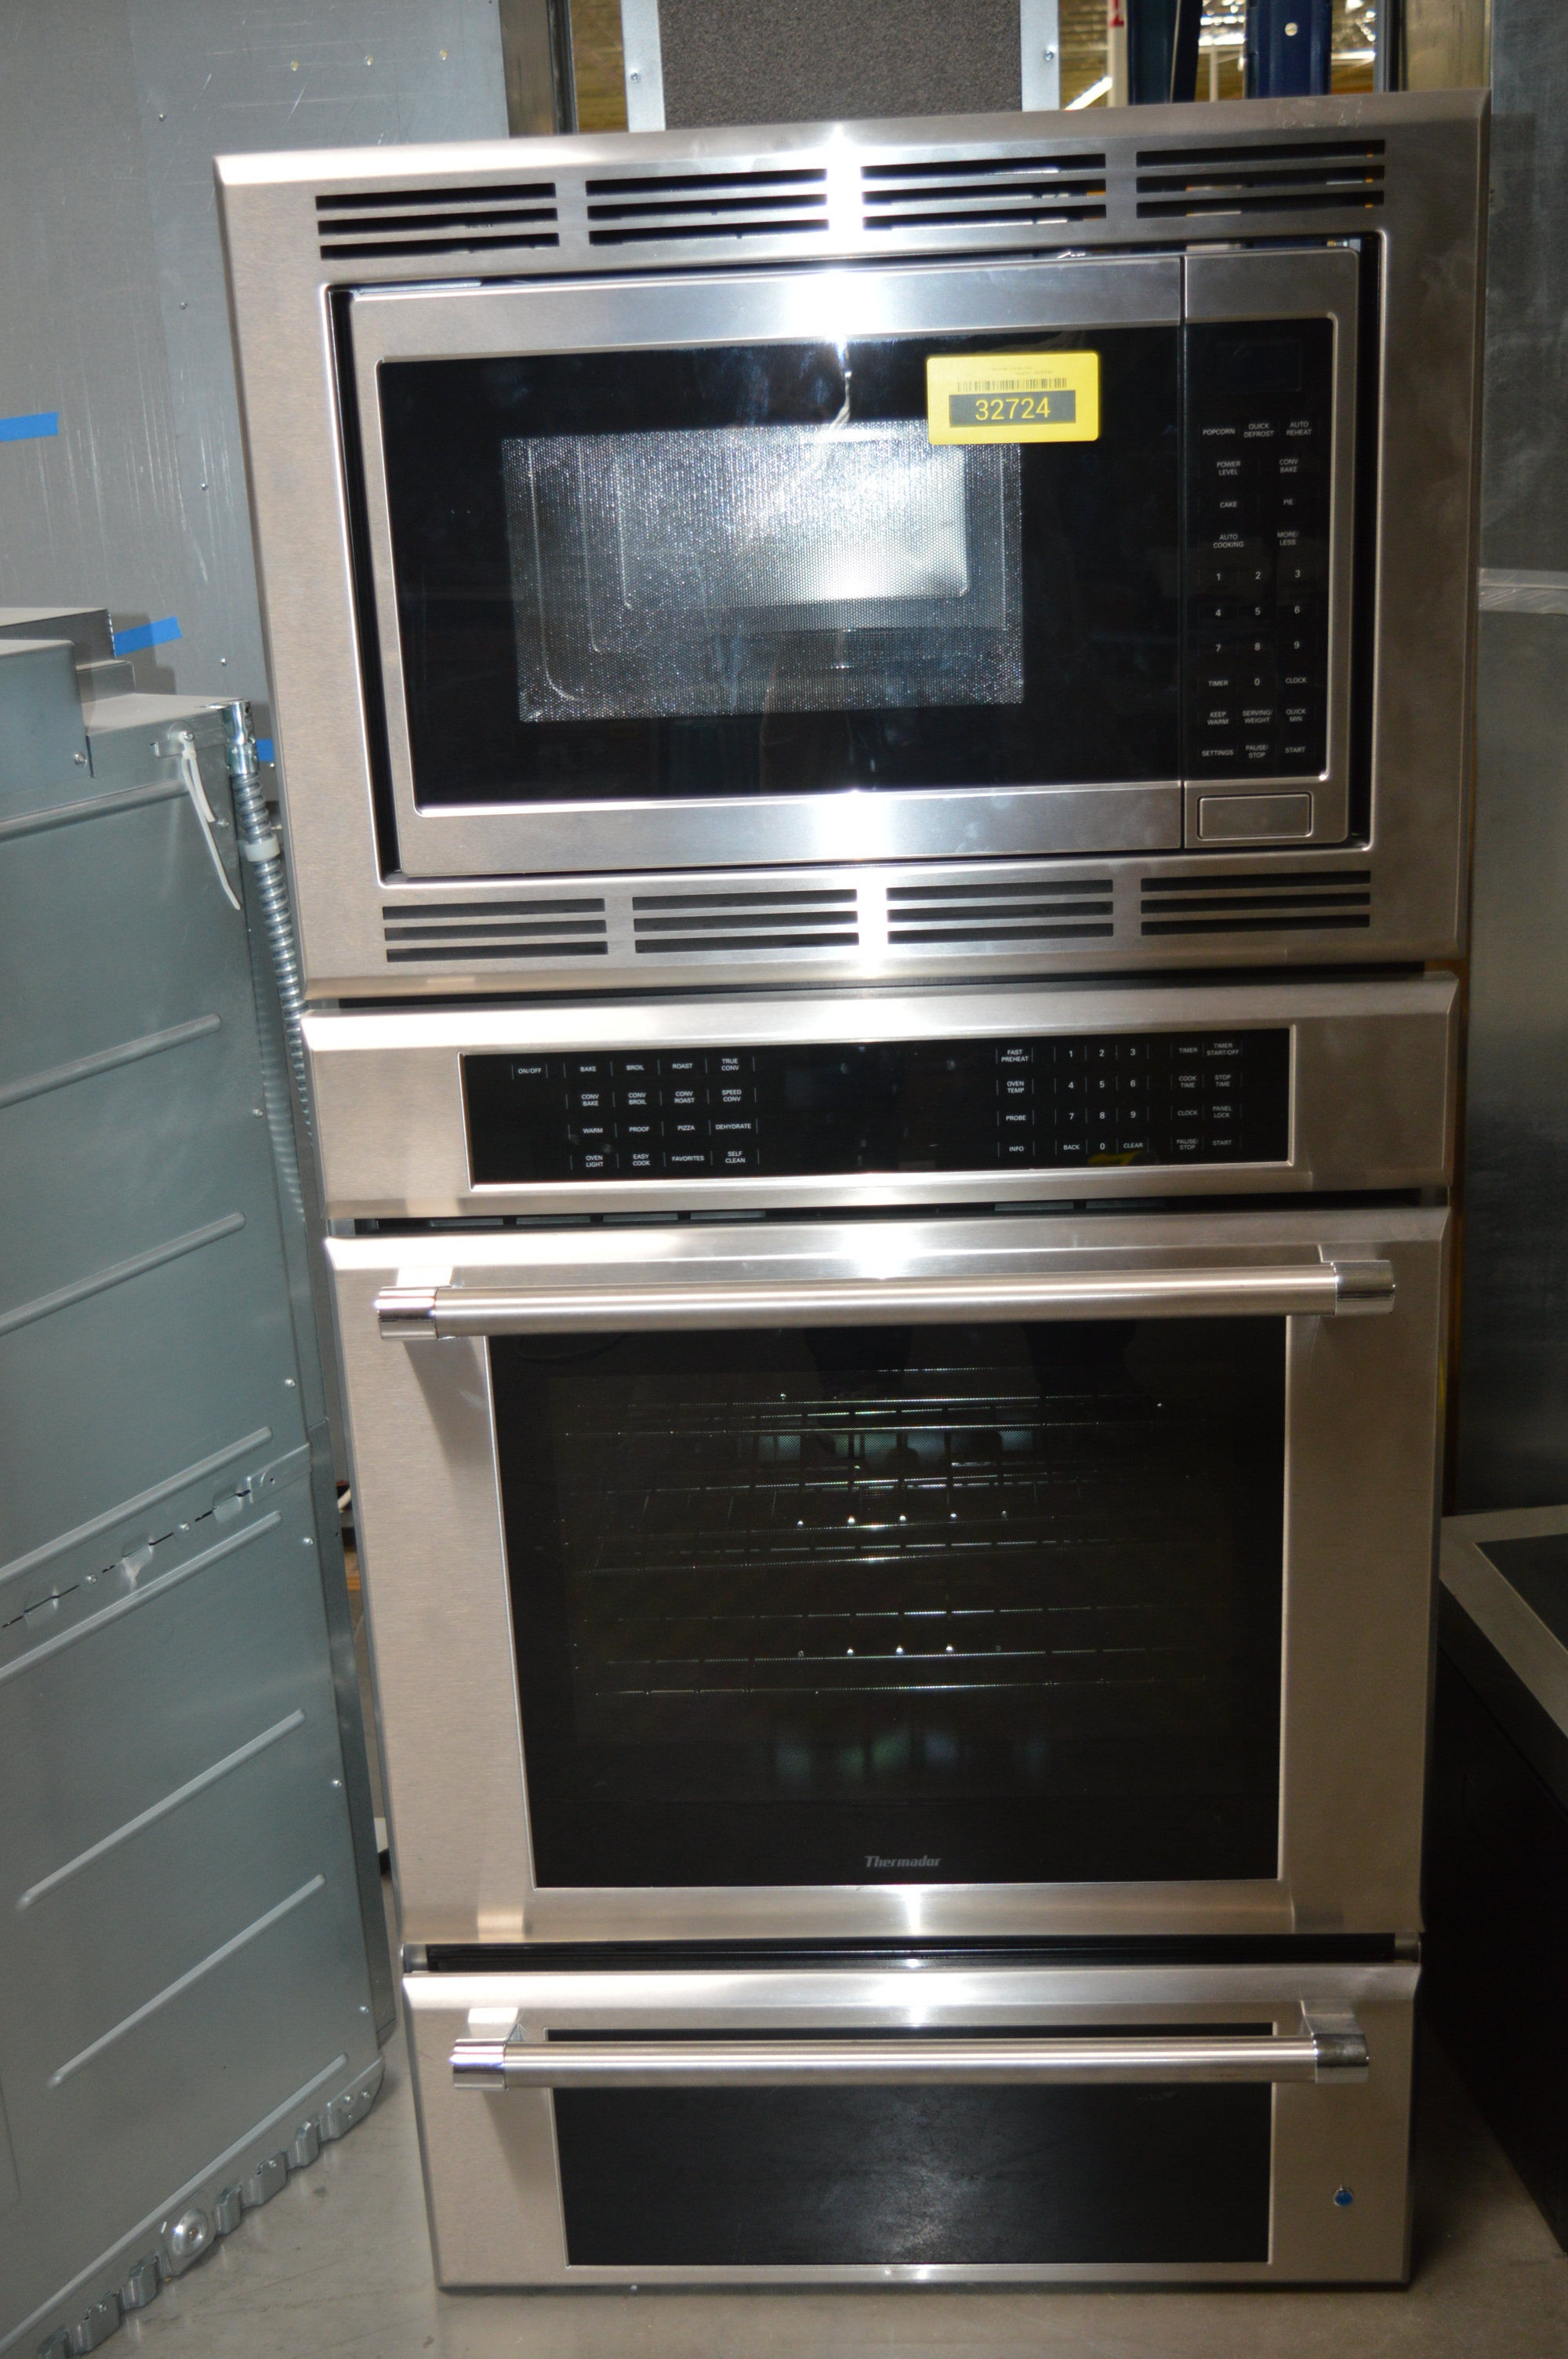 Thermador MEDMCW31JP Microwave-Oven Combo Wall Oven Stainless Steel